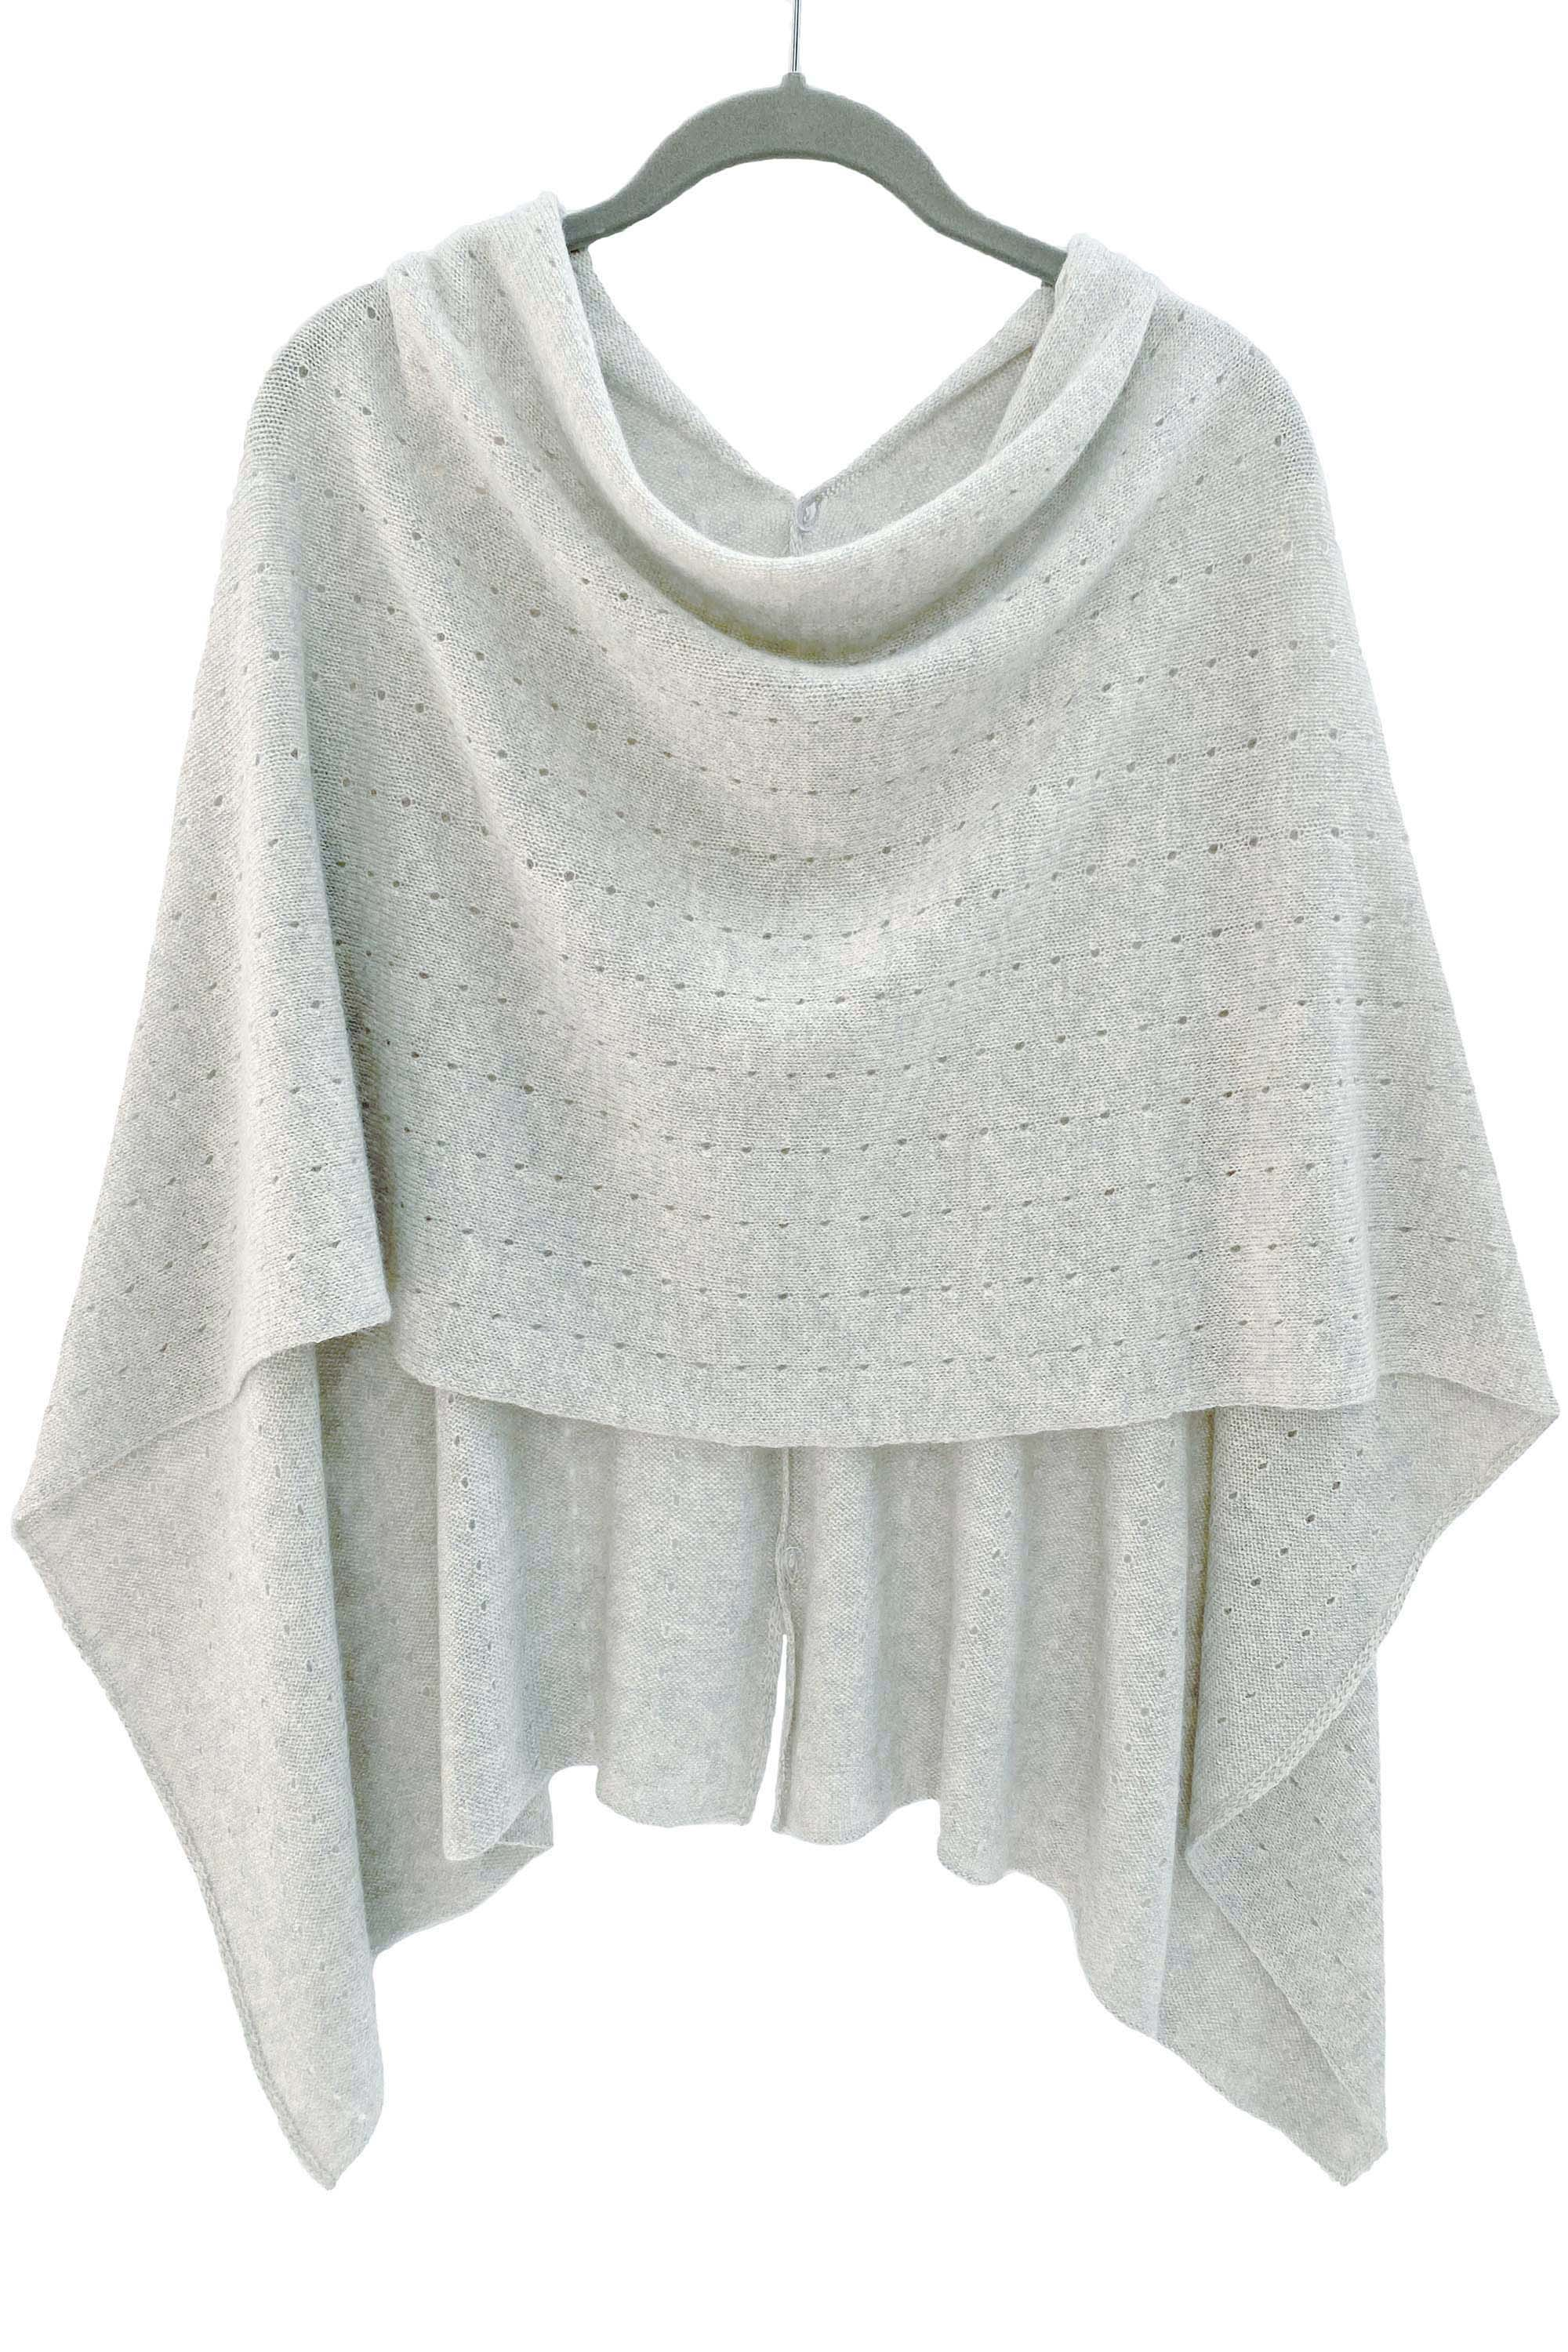 Pale grey Cashmere Poncho UK Women damen Wrap Cape Shawls Scarf shawl cardigan light weight poncho ladies small button poncho sweater sale anniversary gift wedding present| SEMON Cashmere